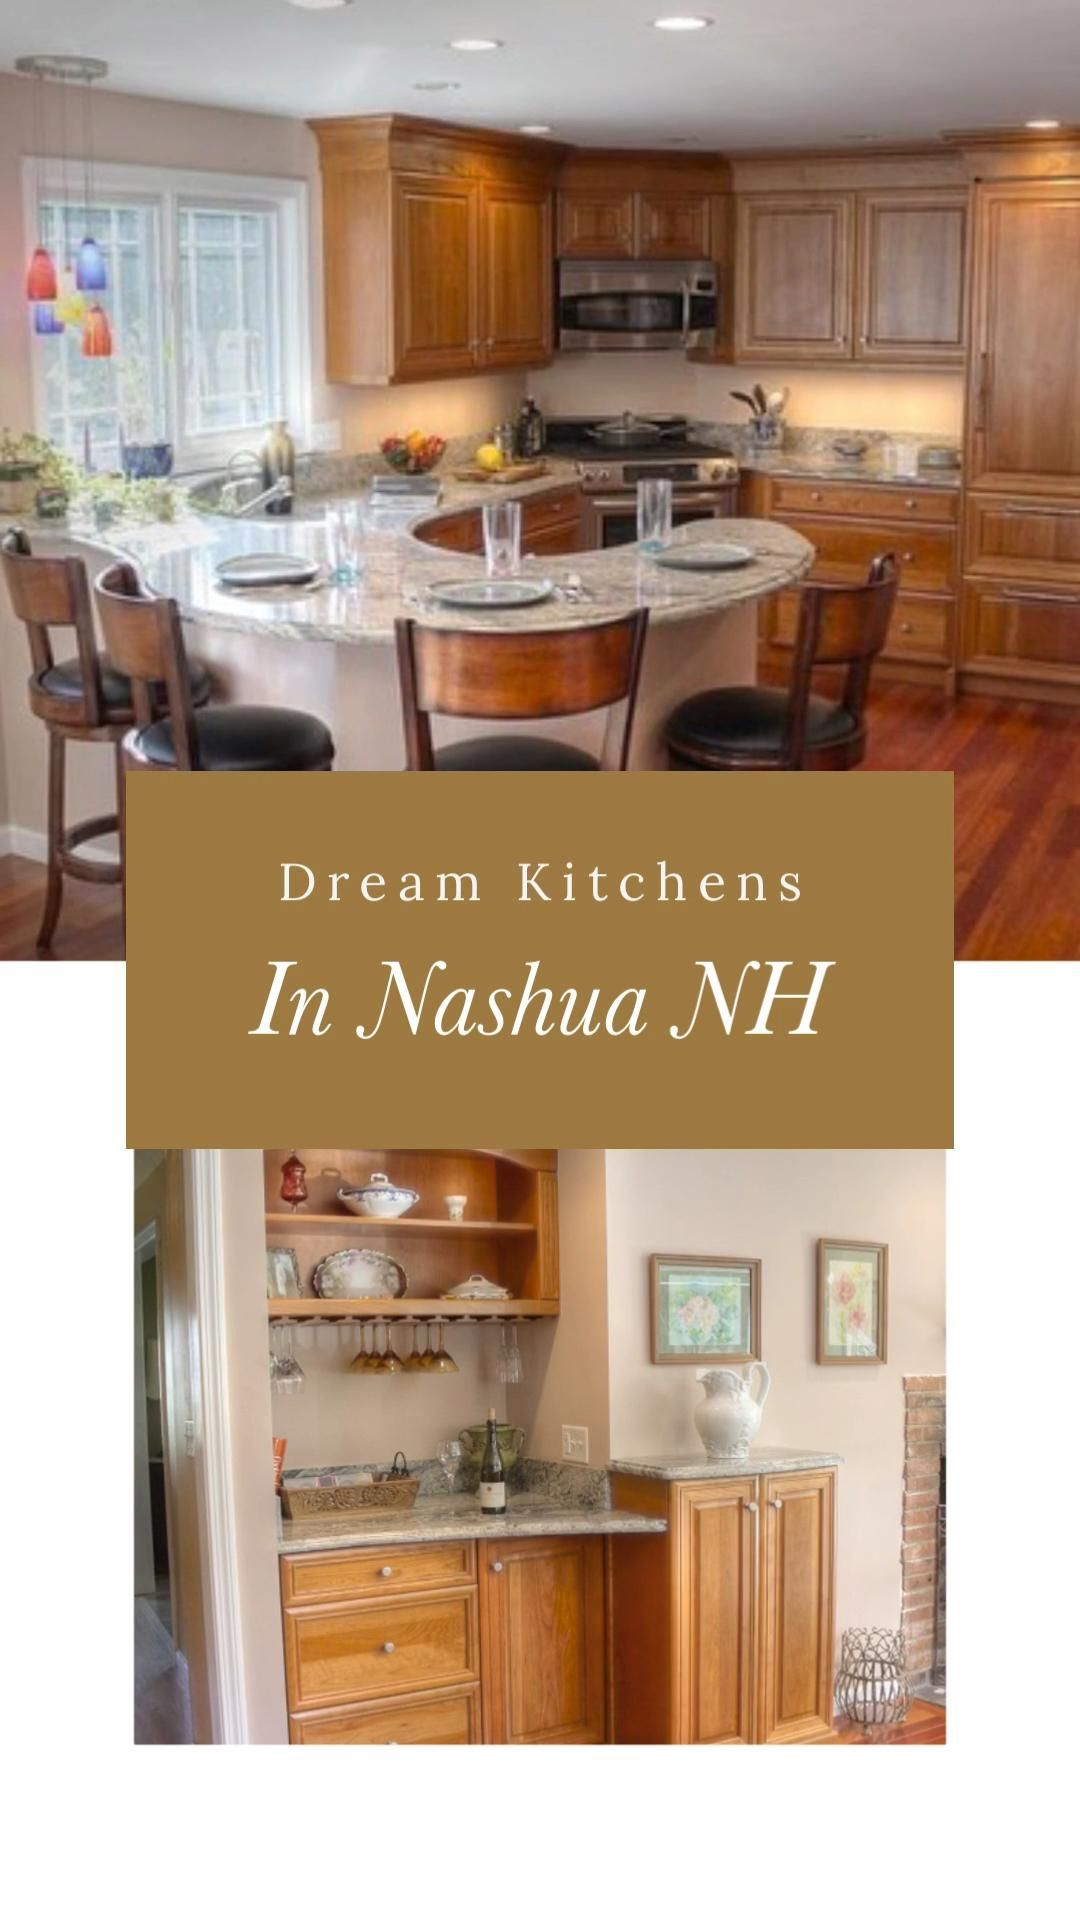 Rustic Kitchen Remodel Video In 2020 Kitchen Remodel Small Home Renovation Home Remodeling